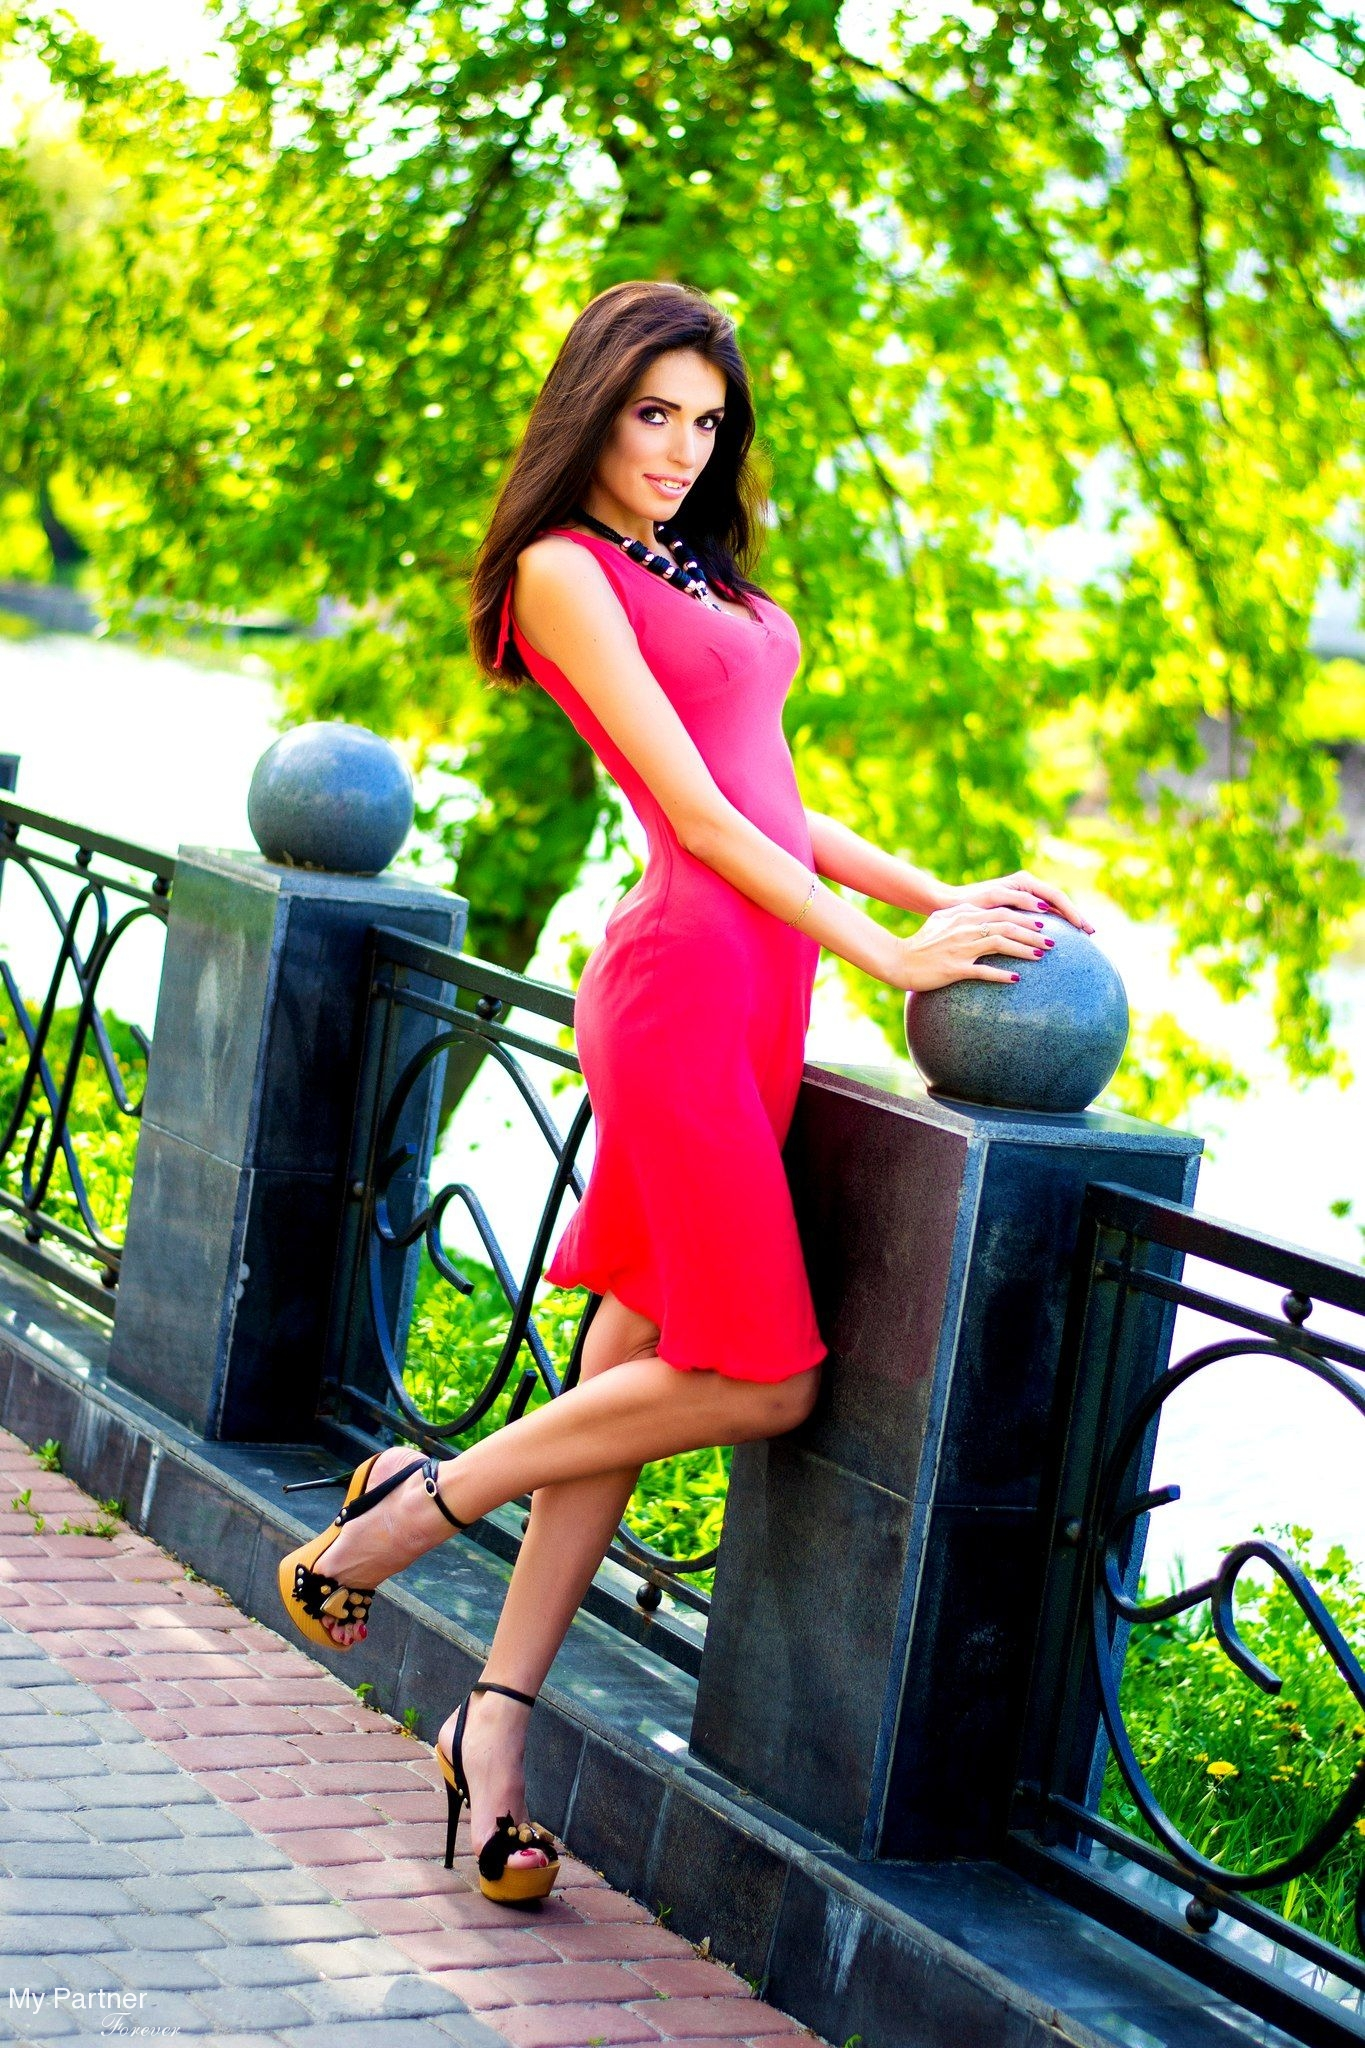 kharkov ukraine dating About kharkov city, the capital of ukrainian brides this is the best place in the world to look for a beautiful ukrainian woman for dating and marriage.